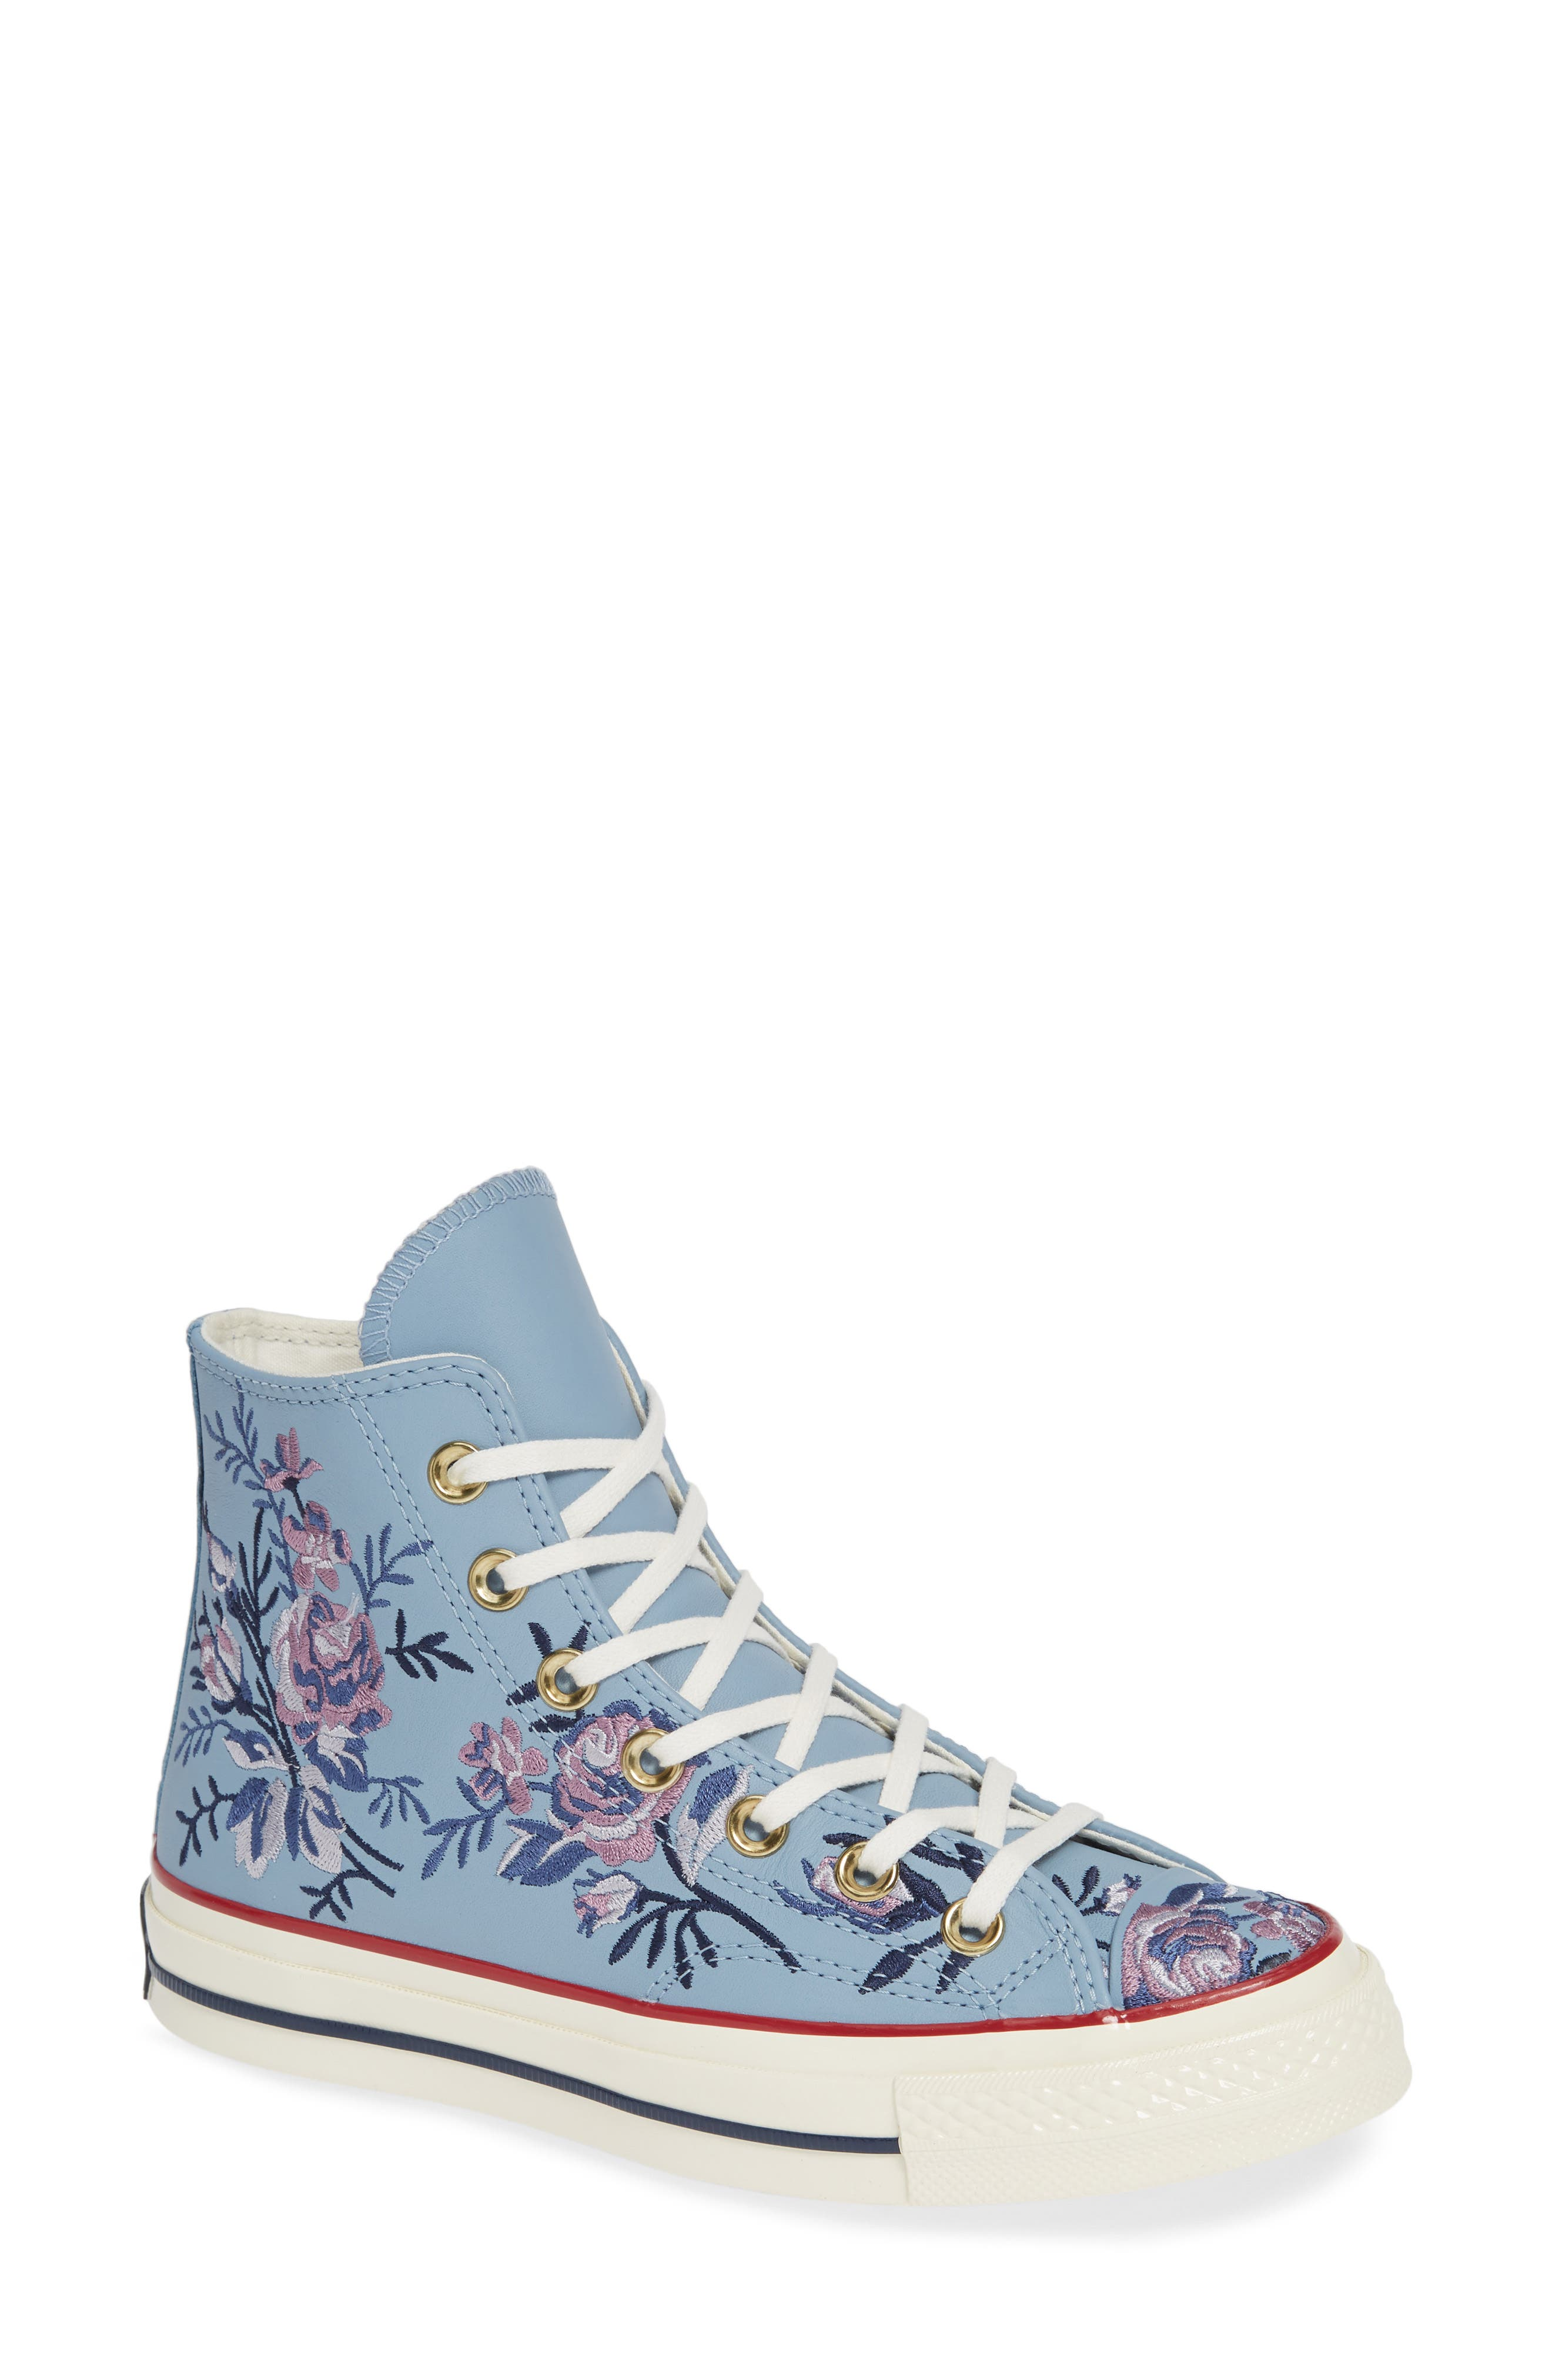 Chuck Taylor<sup>®</sup> All Star<sup>®</sup> Parkway Floral 70 High Top Sneaker,                             Main thumbnail 1, color,                             WASHED DENIM LEATHER